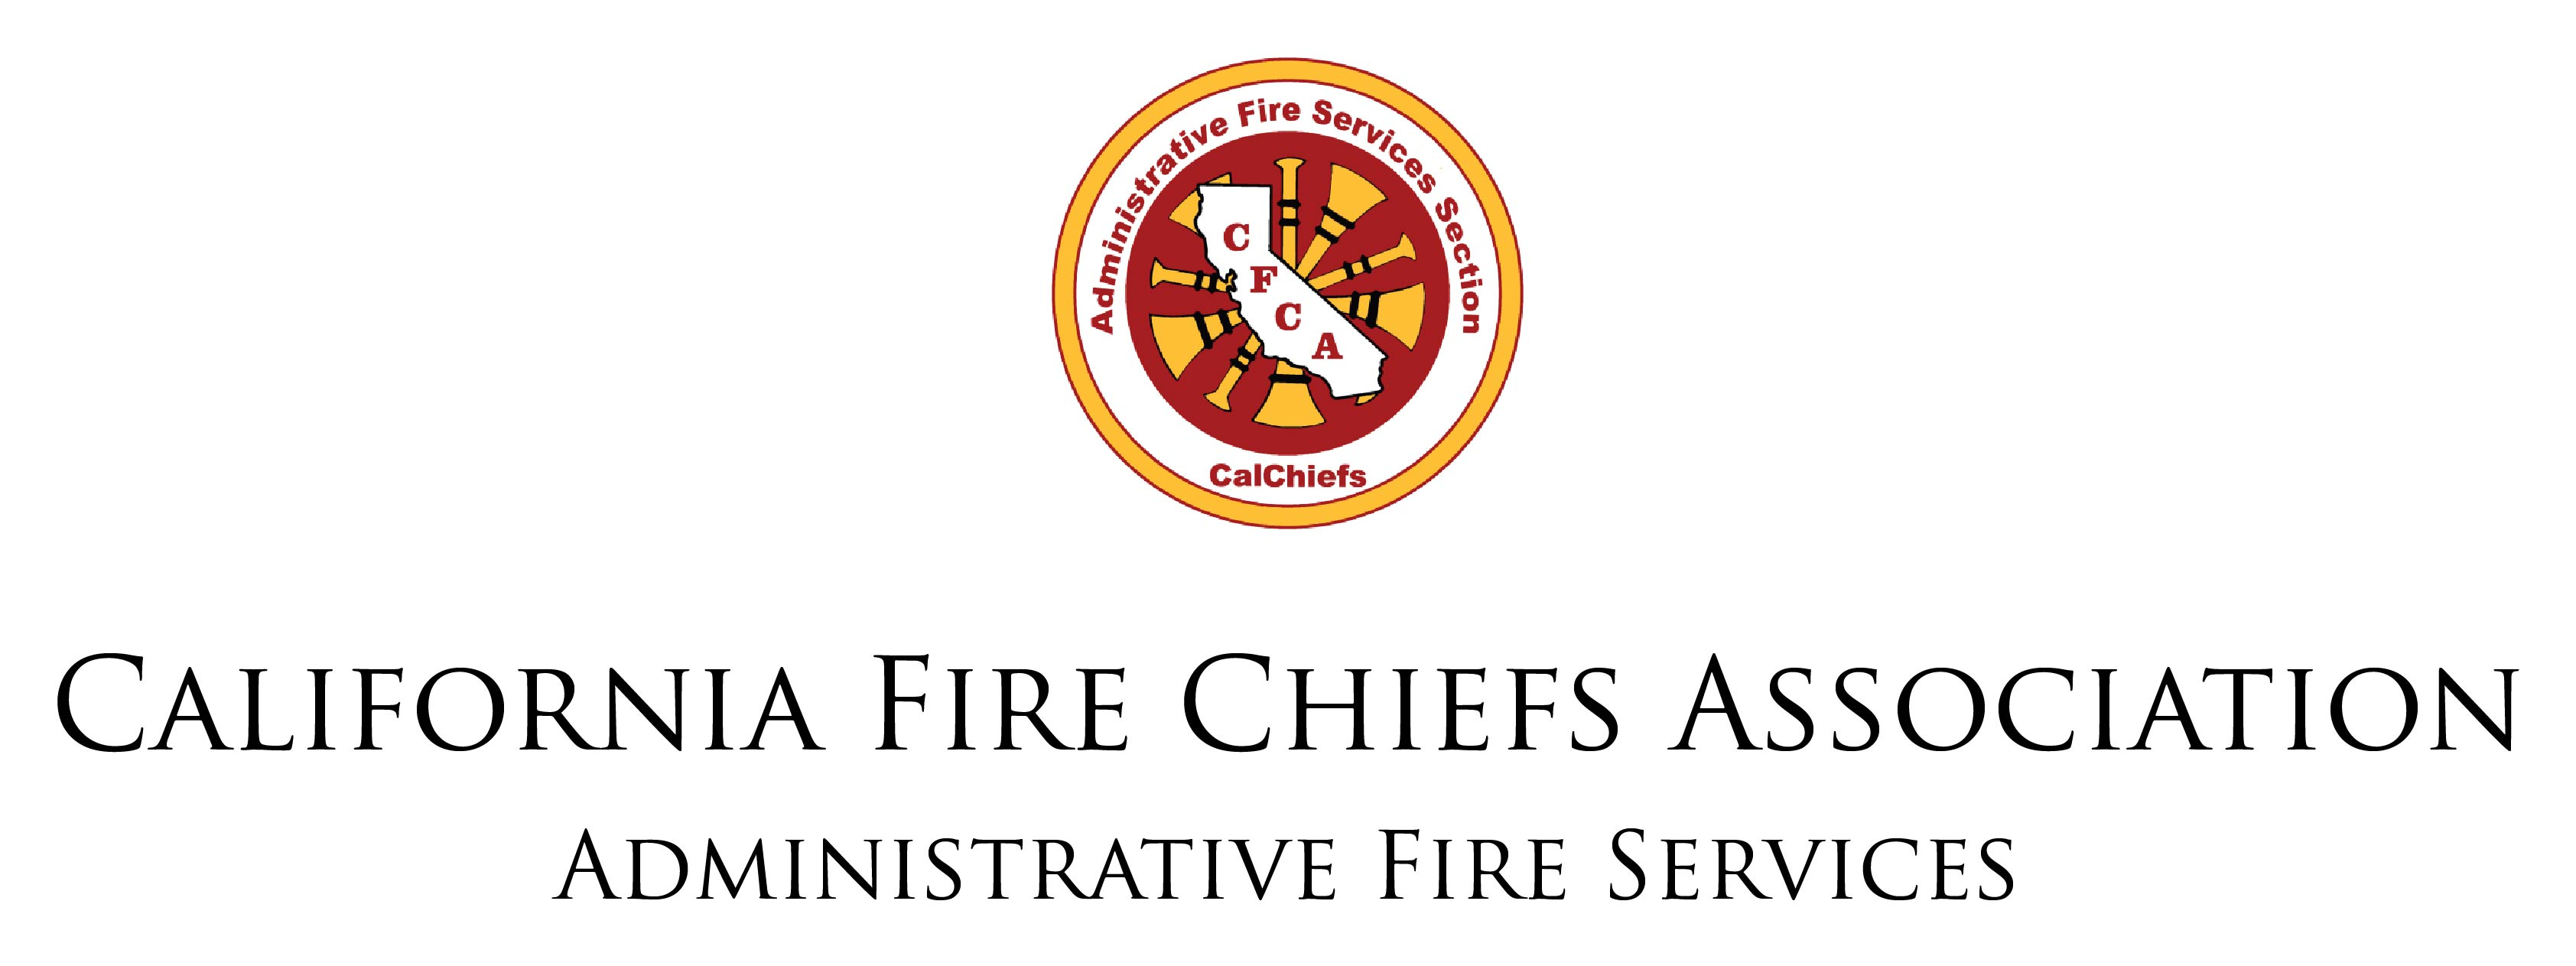 California Fire Chiefs Association - Administrative Fire Services